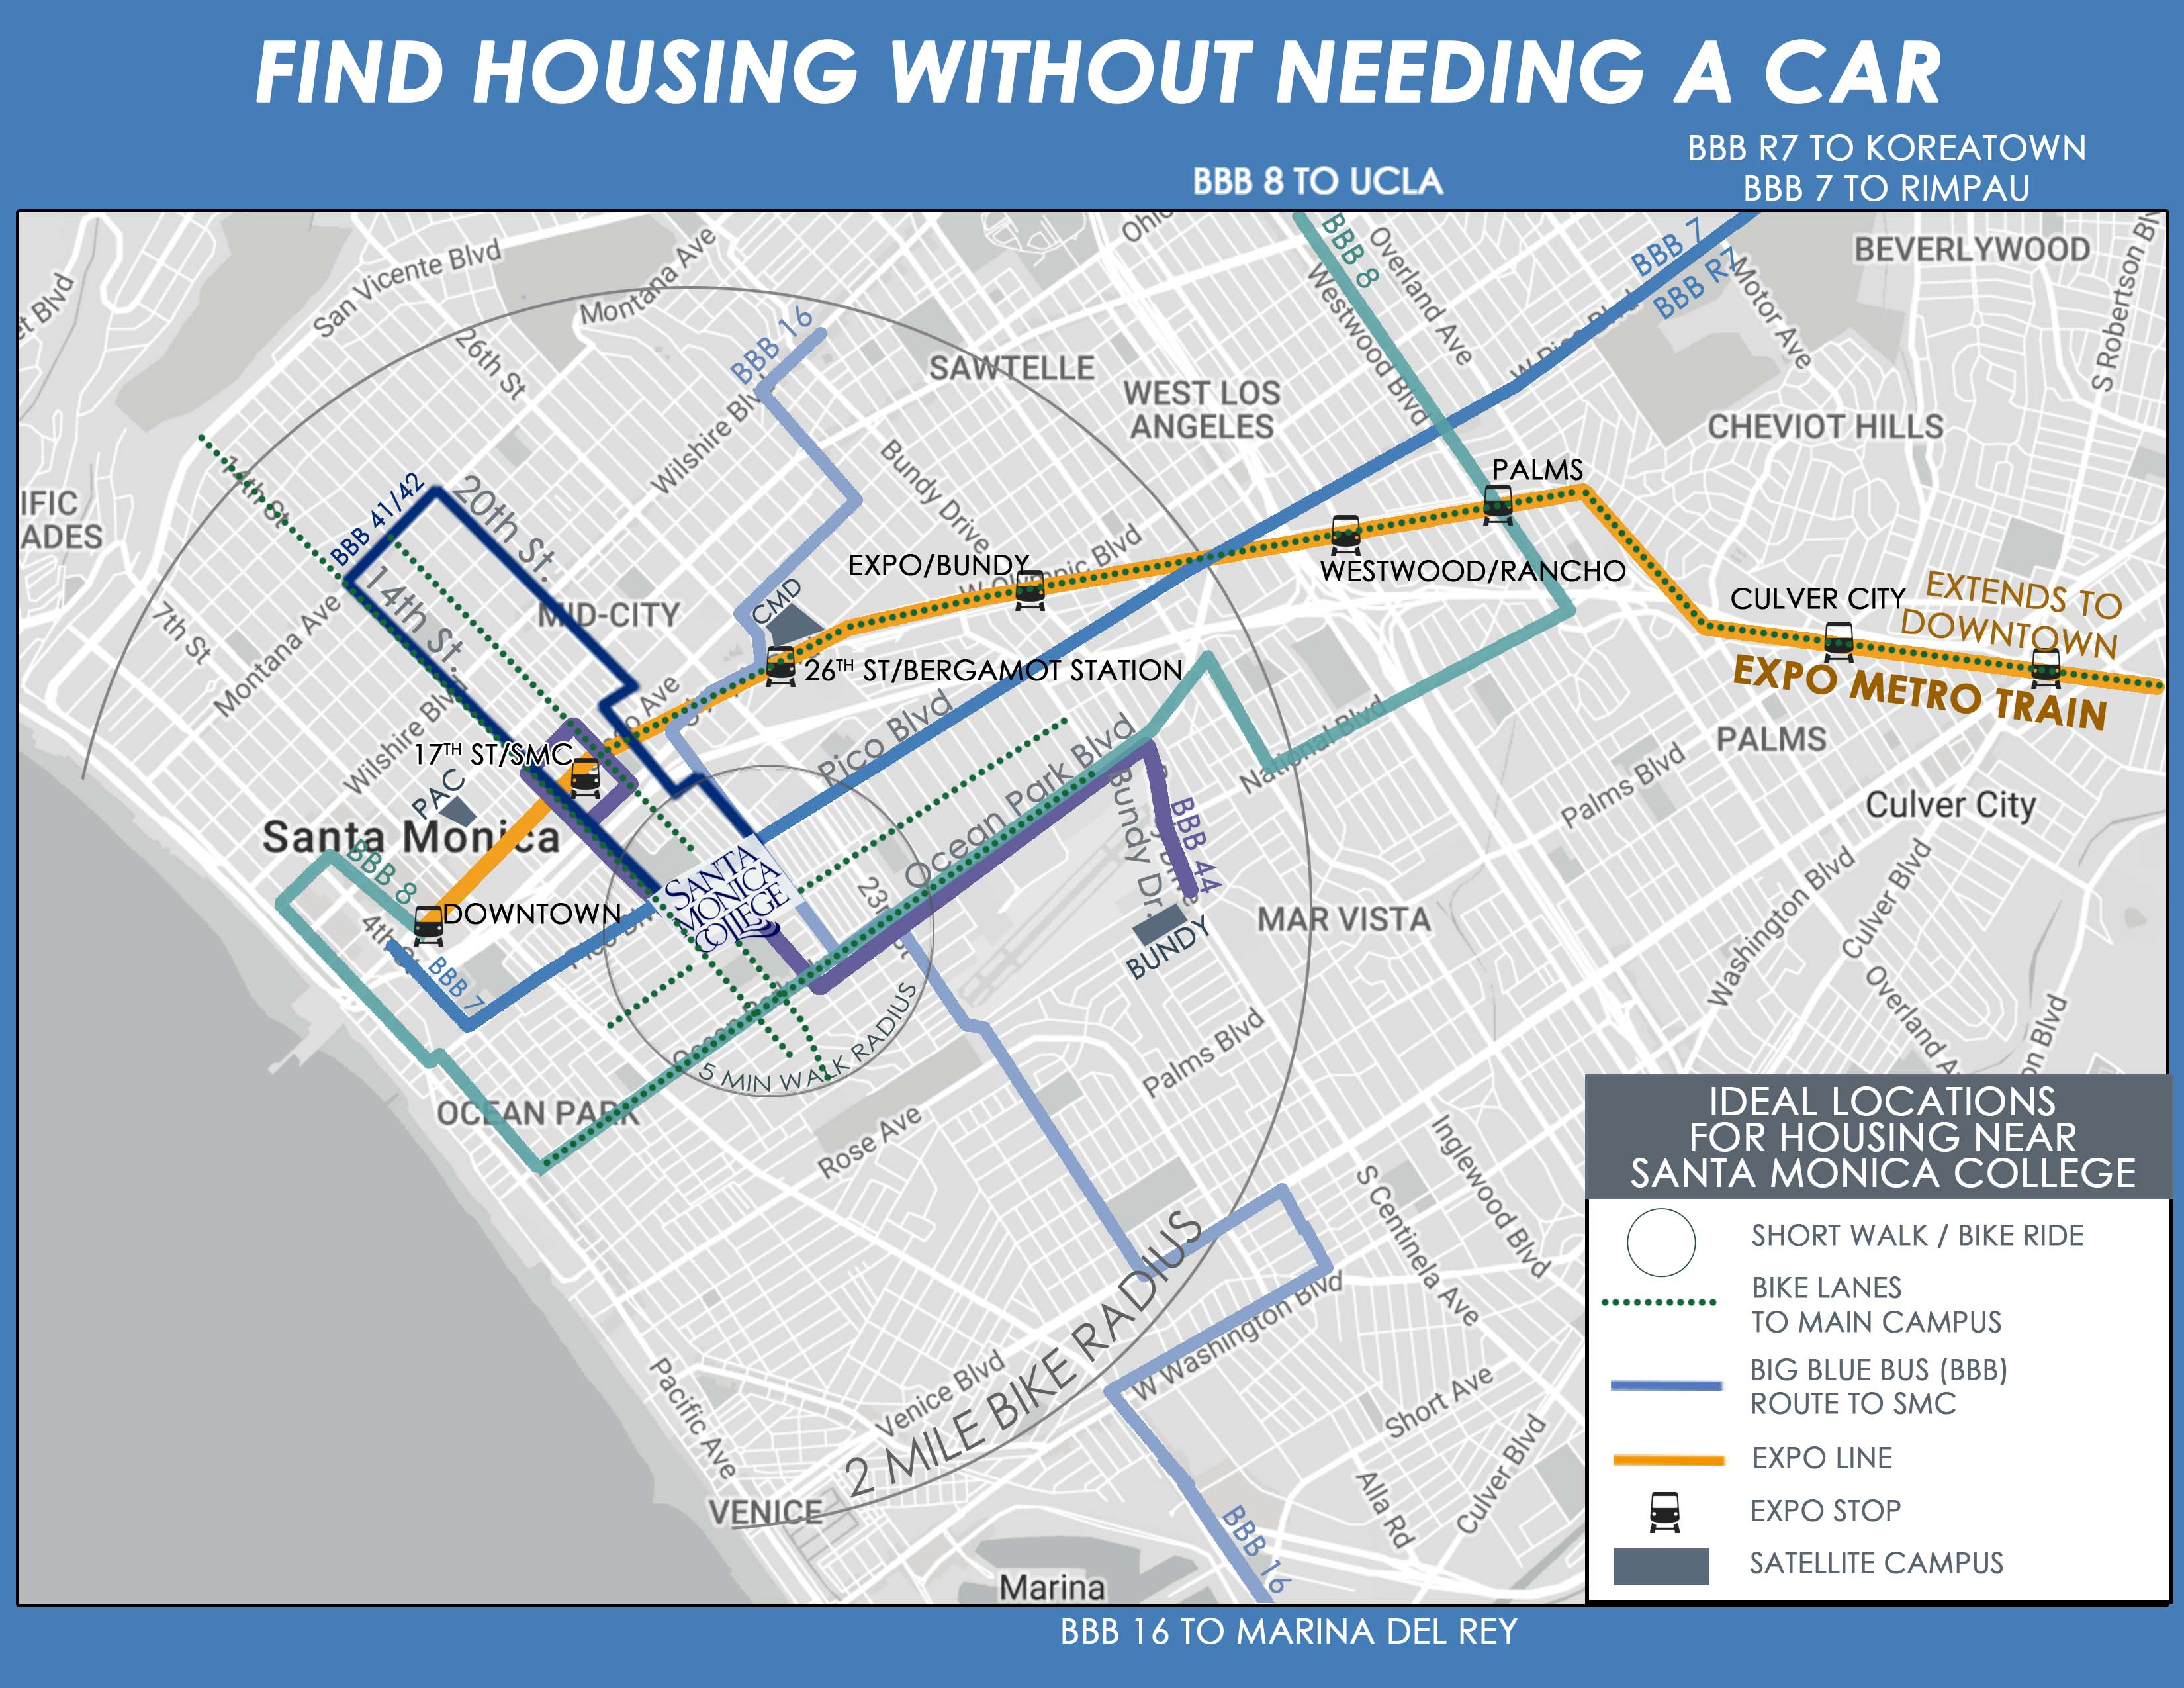 Find Housing Without A Car